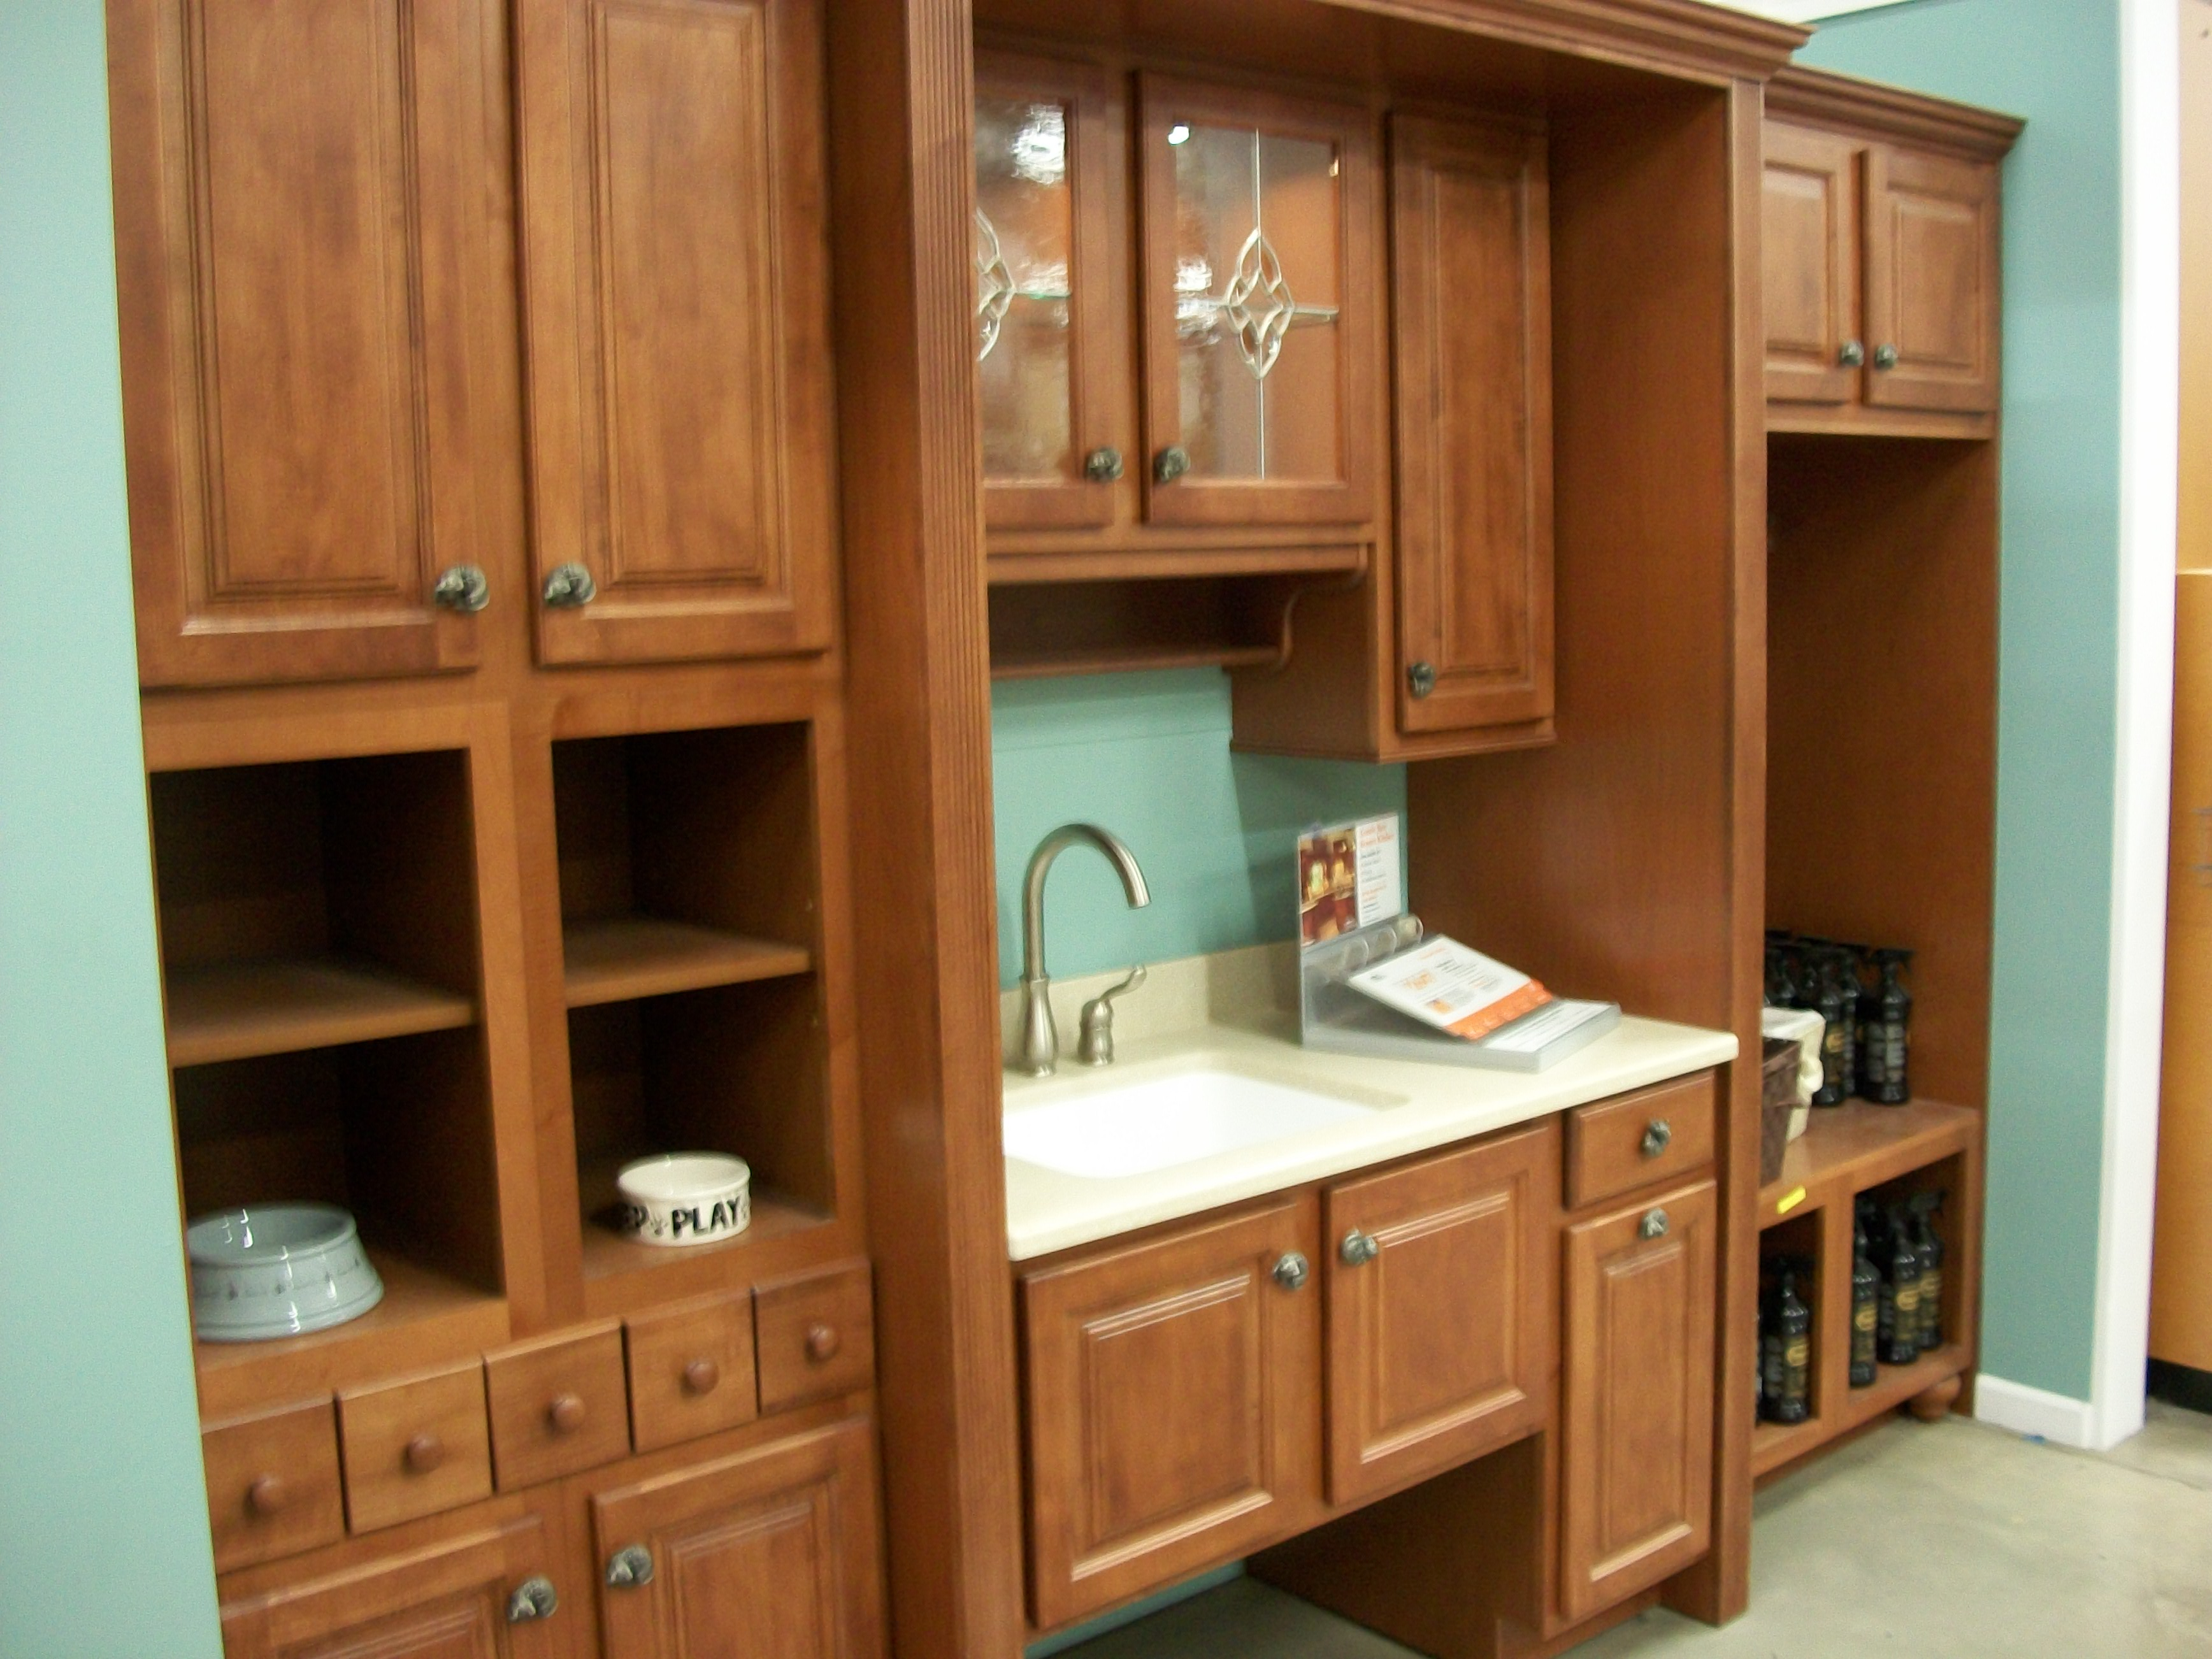 Tips for Basic Repair of Kitchen Drawers - Bauer ...